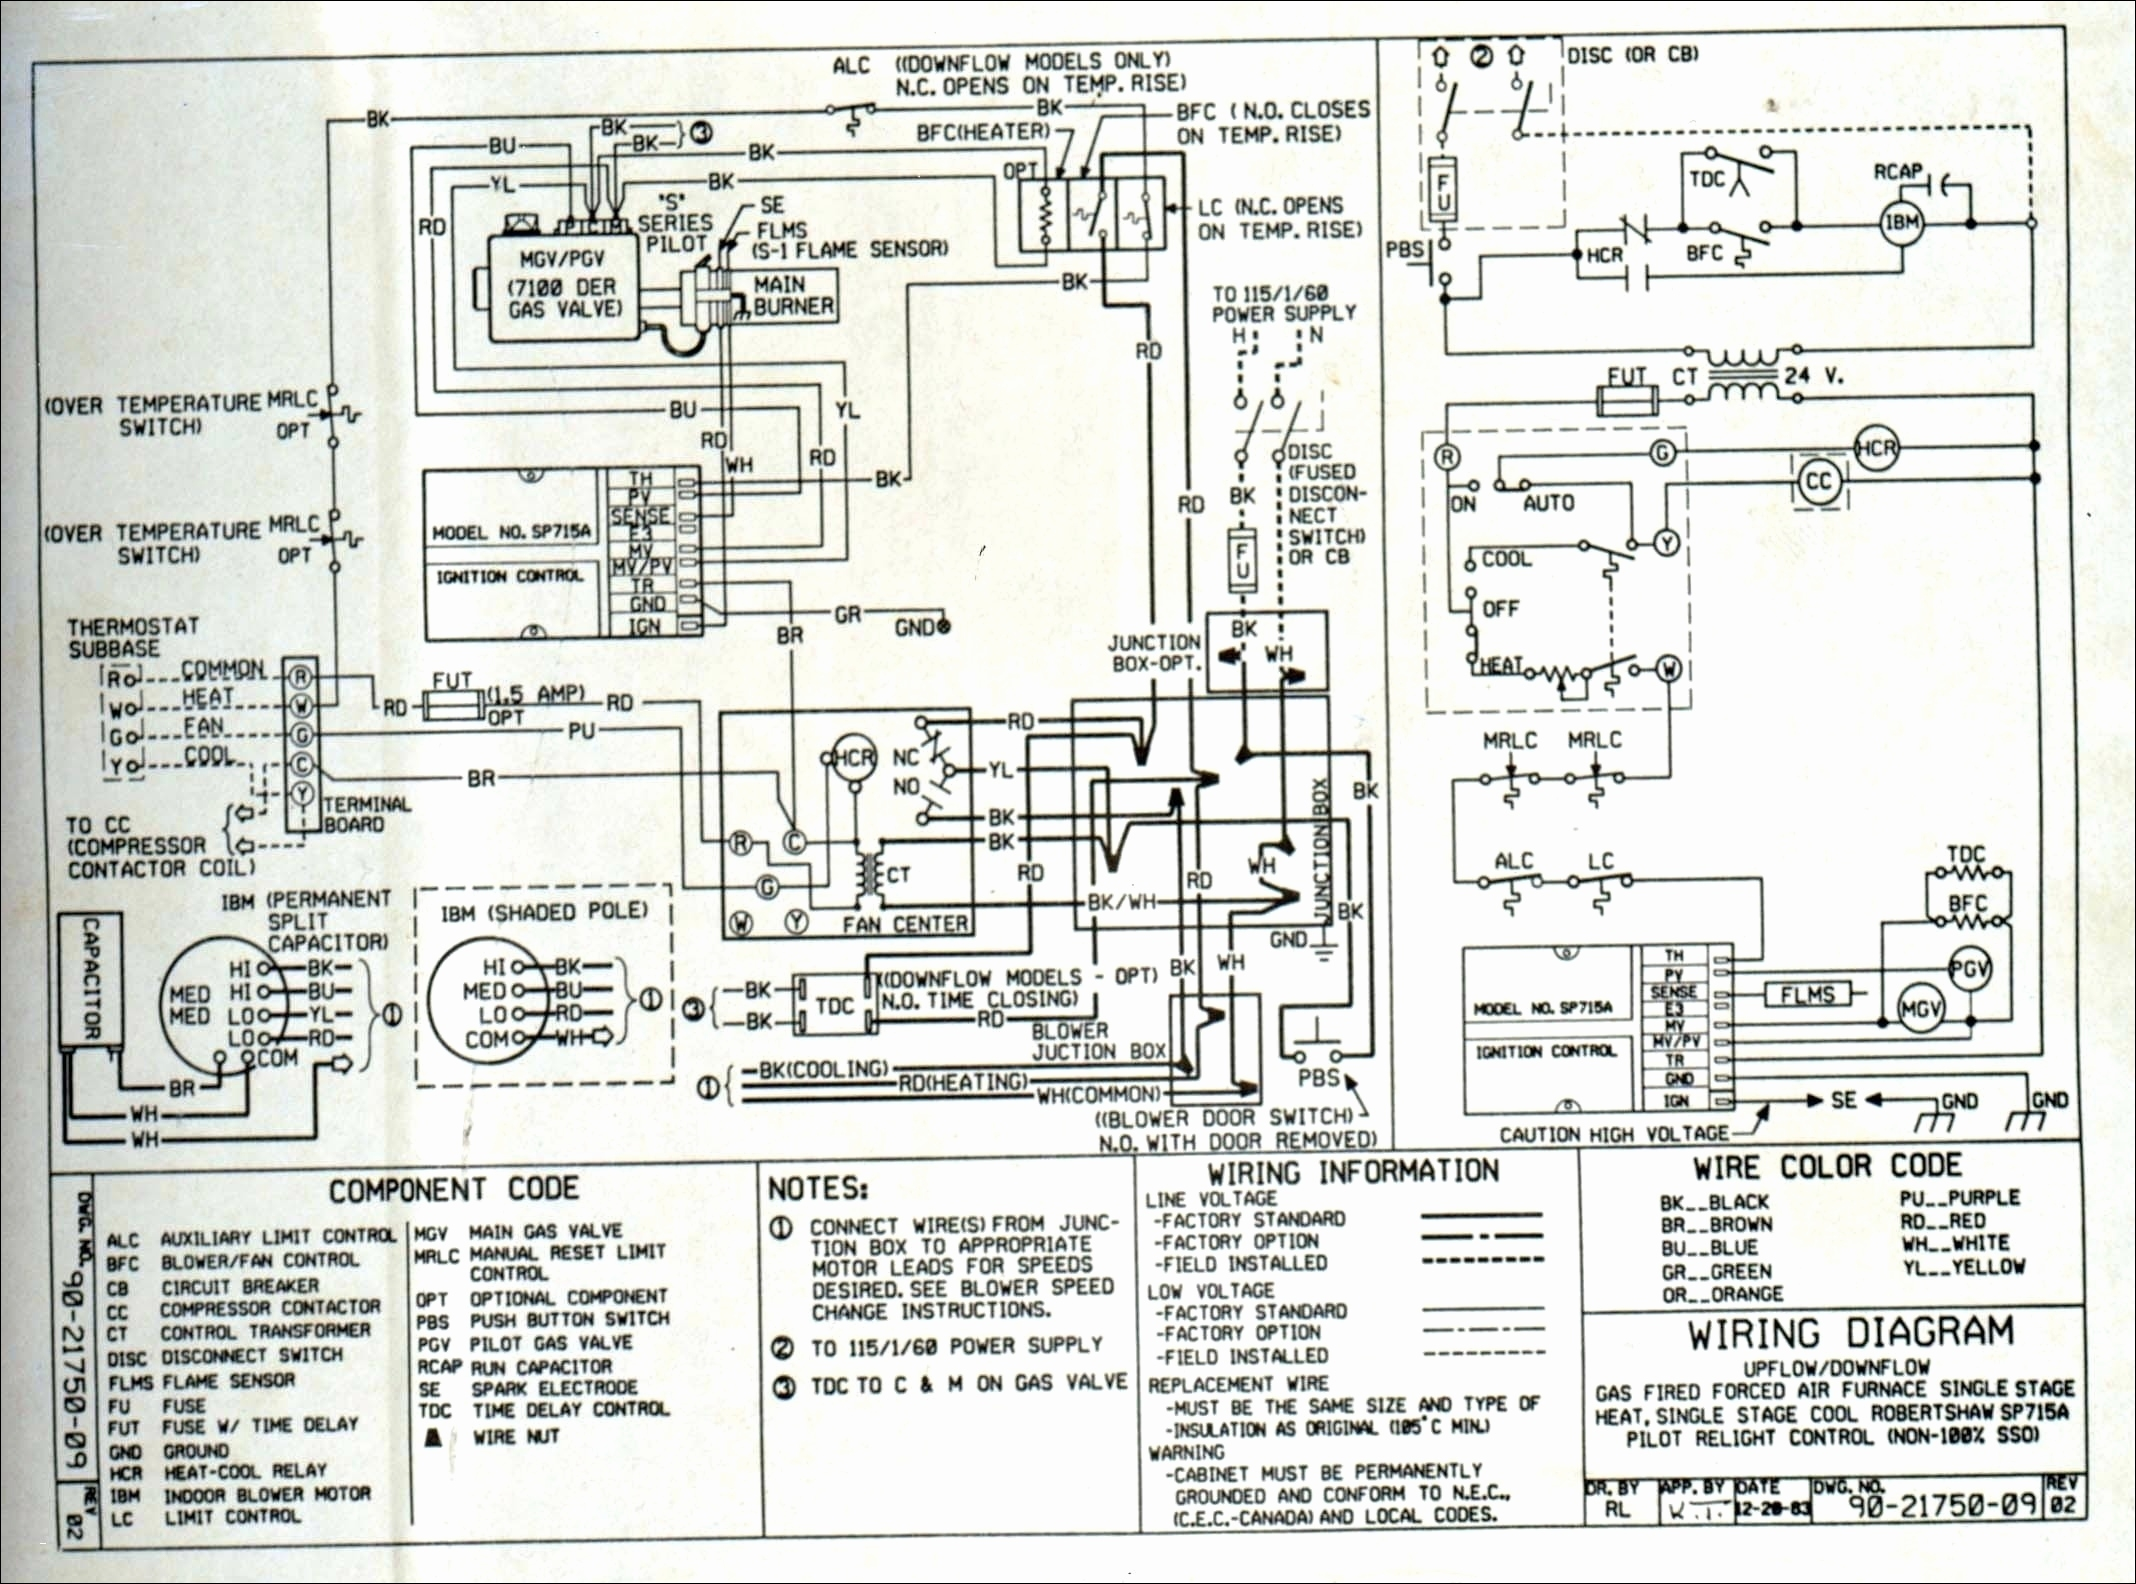 electric furnace wiring wiring diagramwiring diagram for nordyne electric furnace library wiring diagramwiring diagram for nordyne electric furnace free about